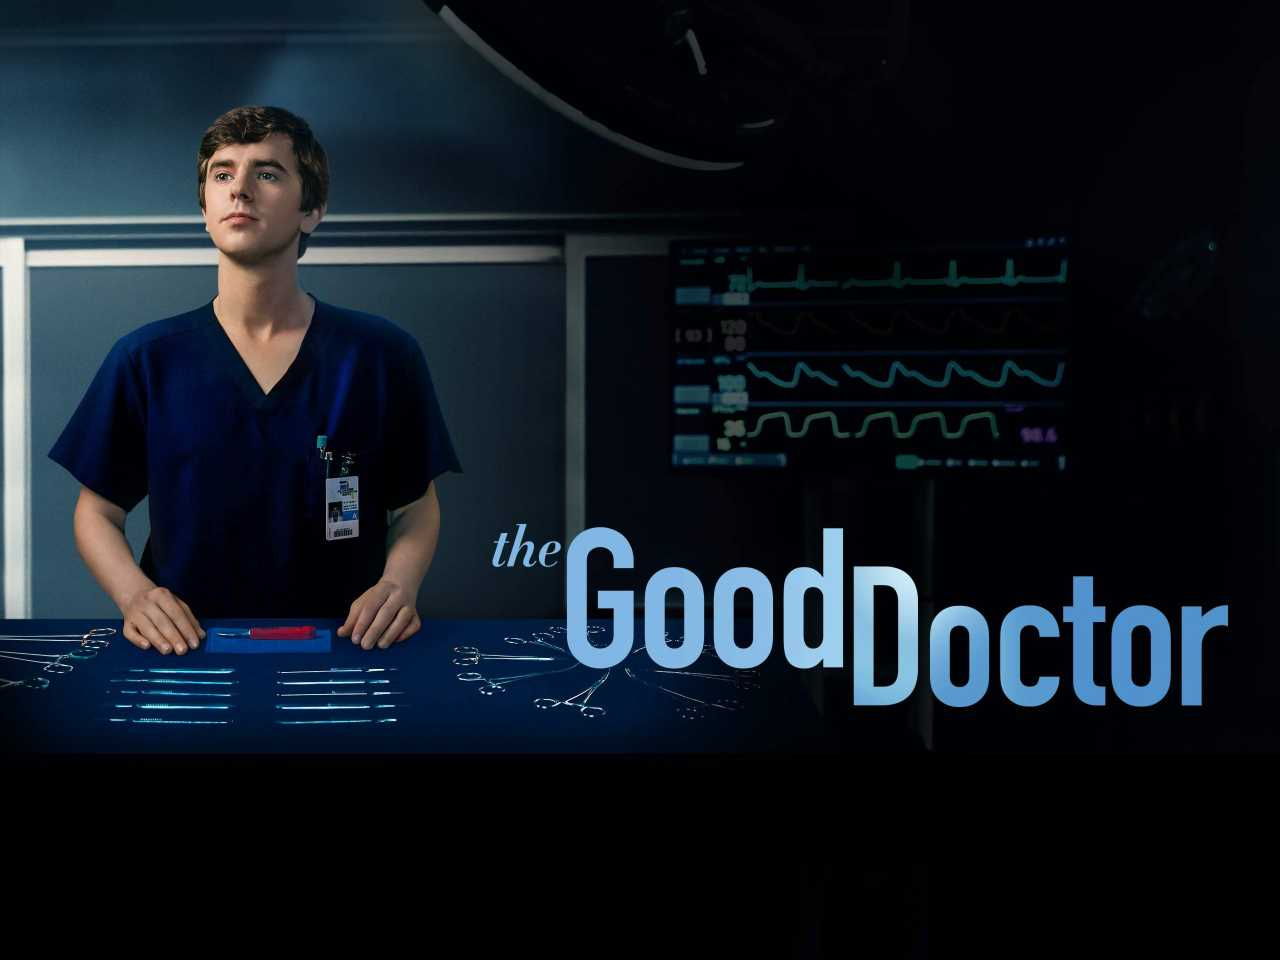 'The Good Doctor': los capítulos de la temporada 3 se estrenan en Cuatro